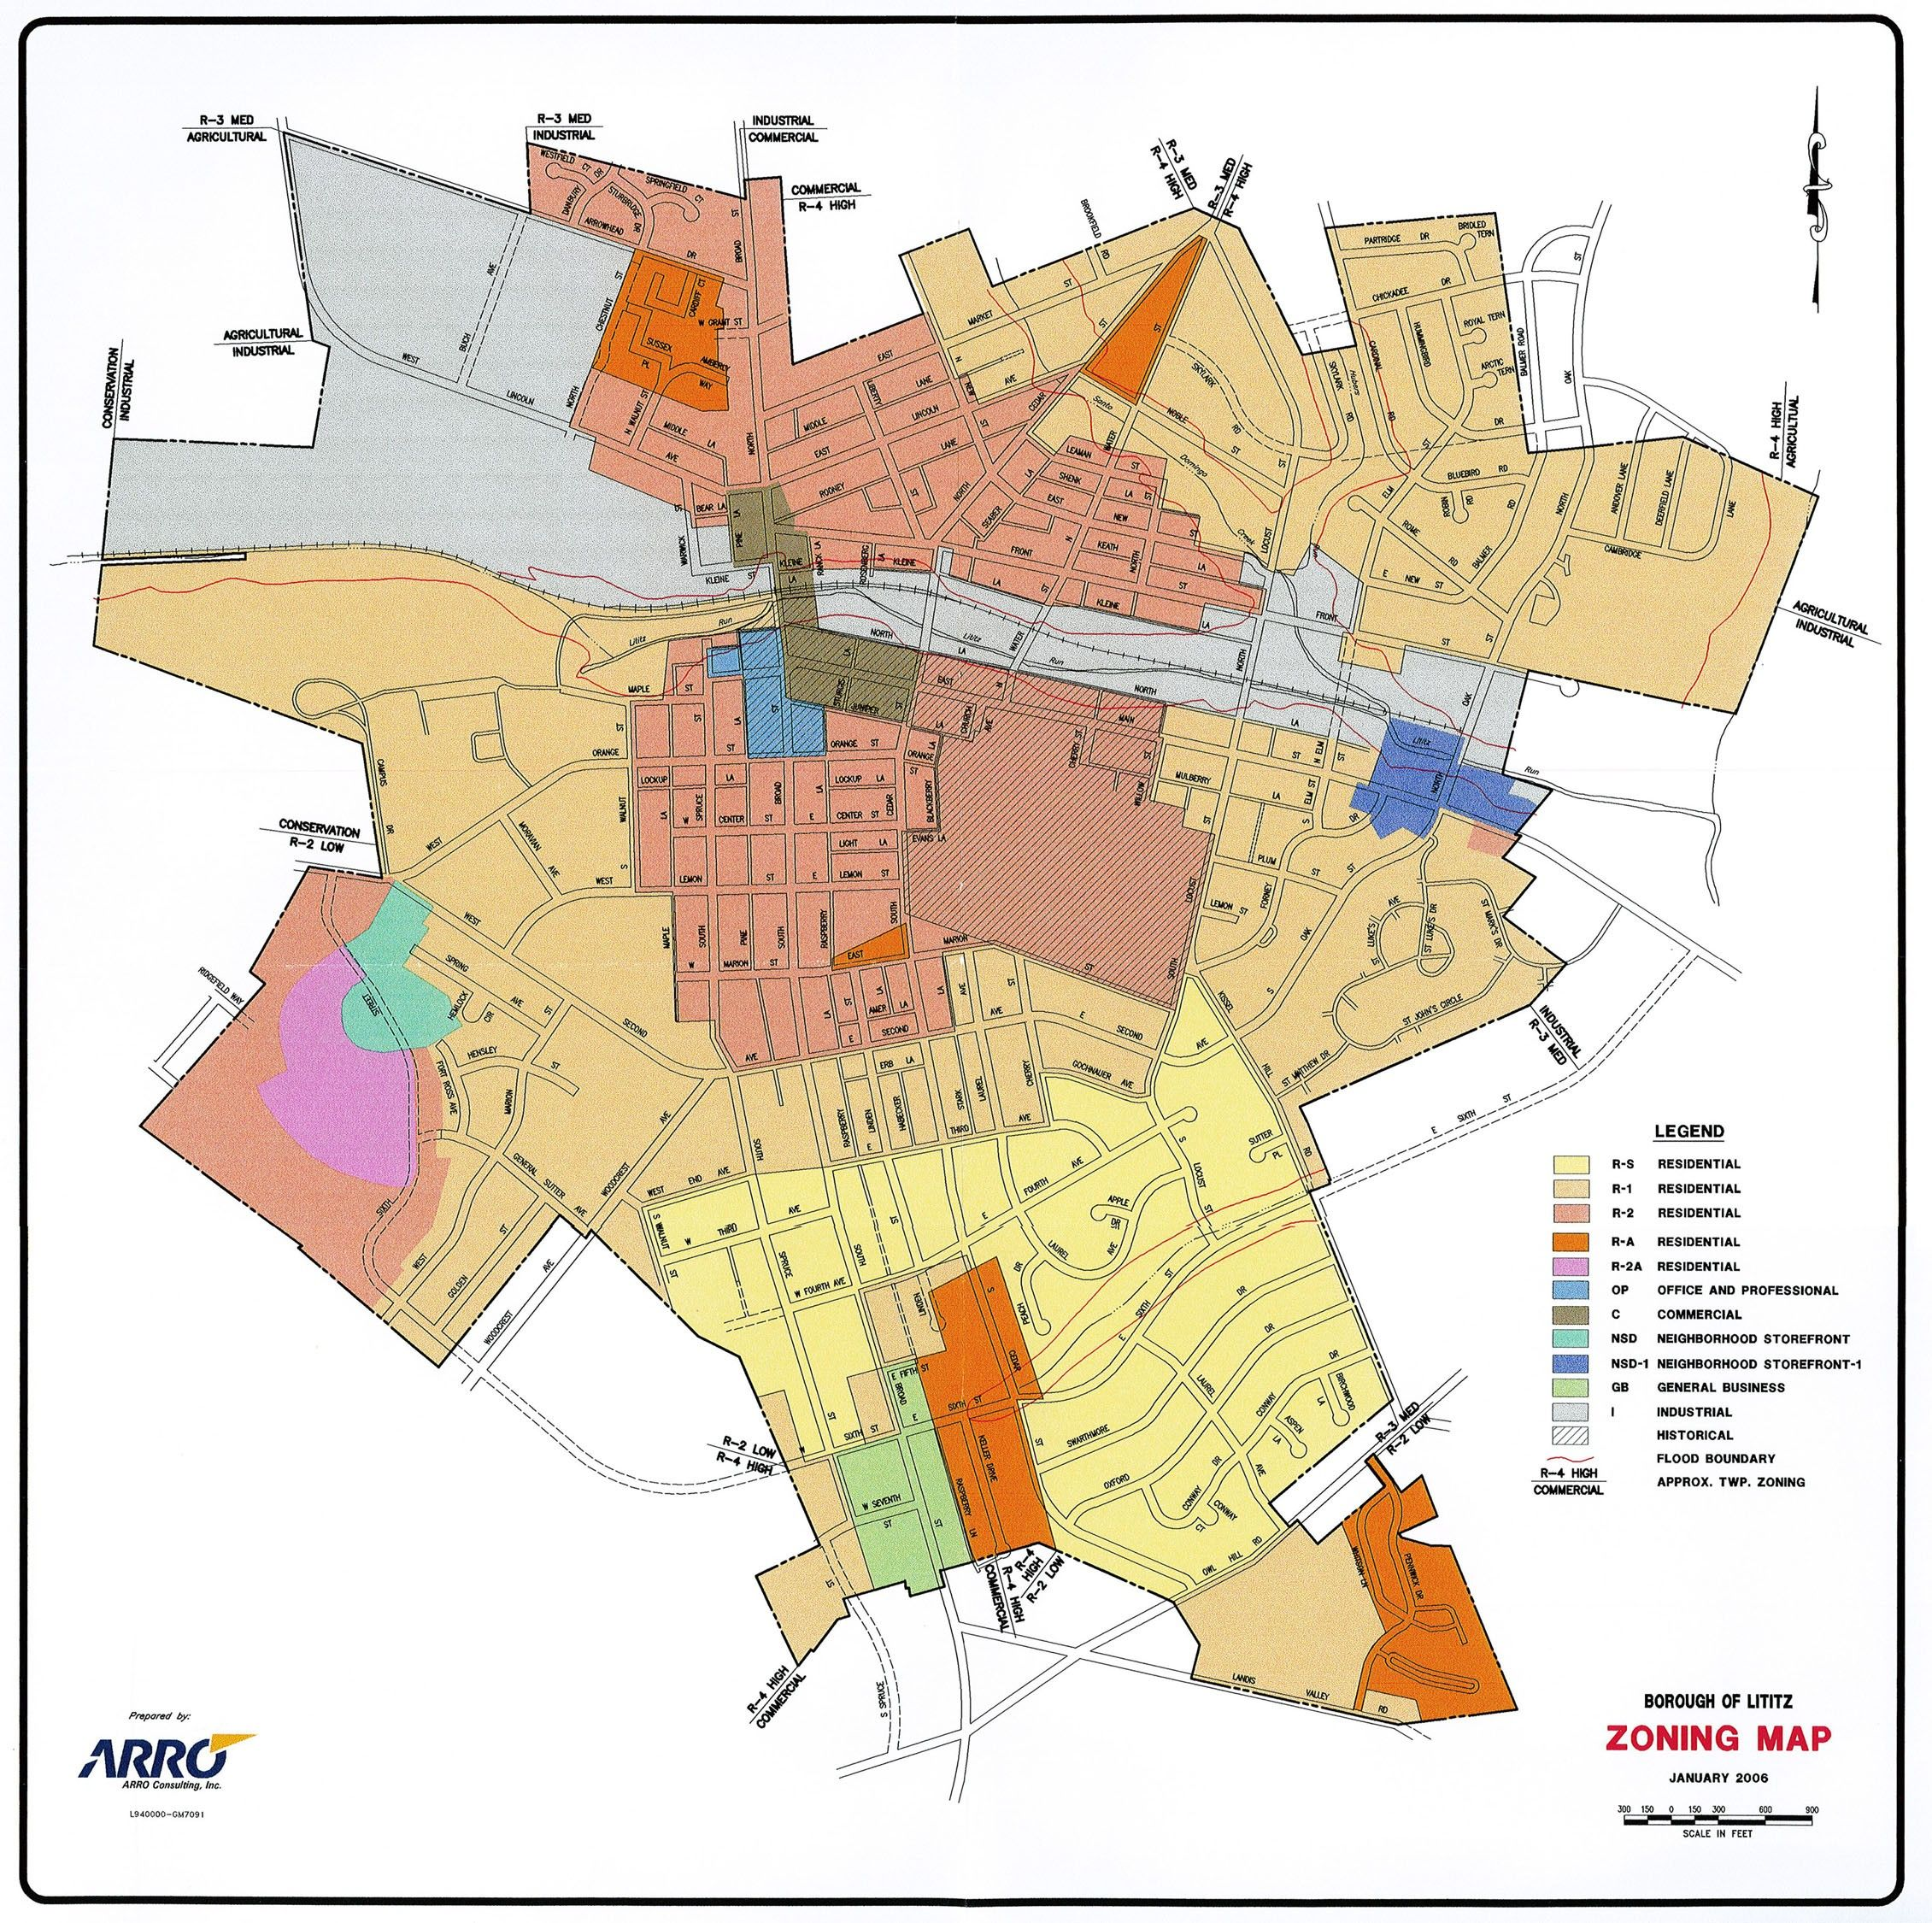 Site Map Example: This Image Shows A Map Of Zoning In An Example City